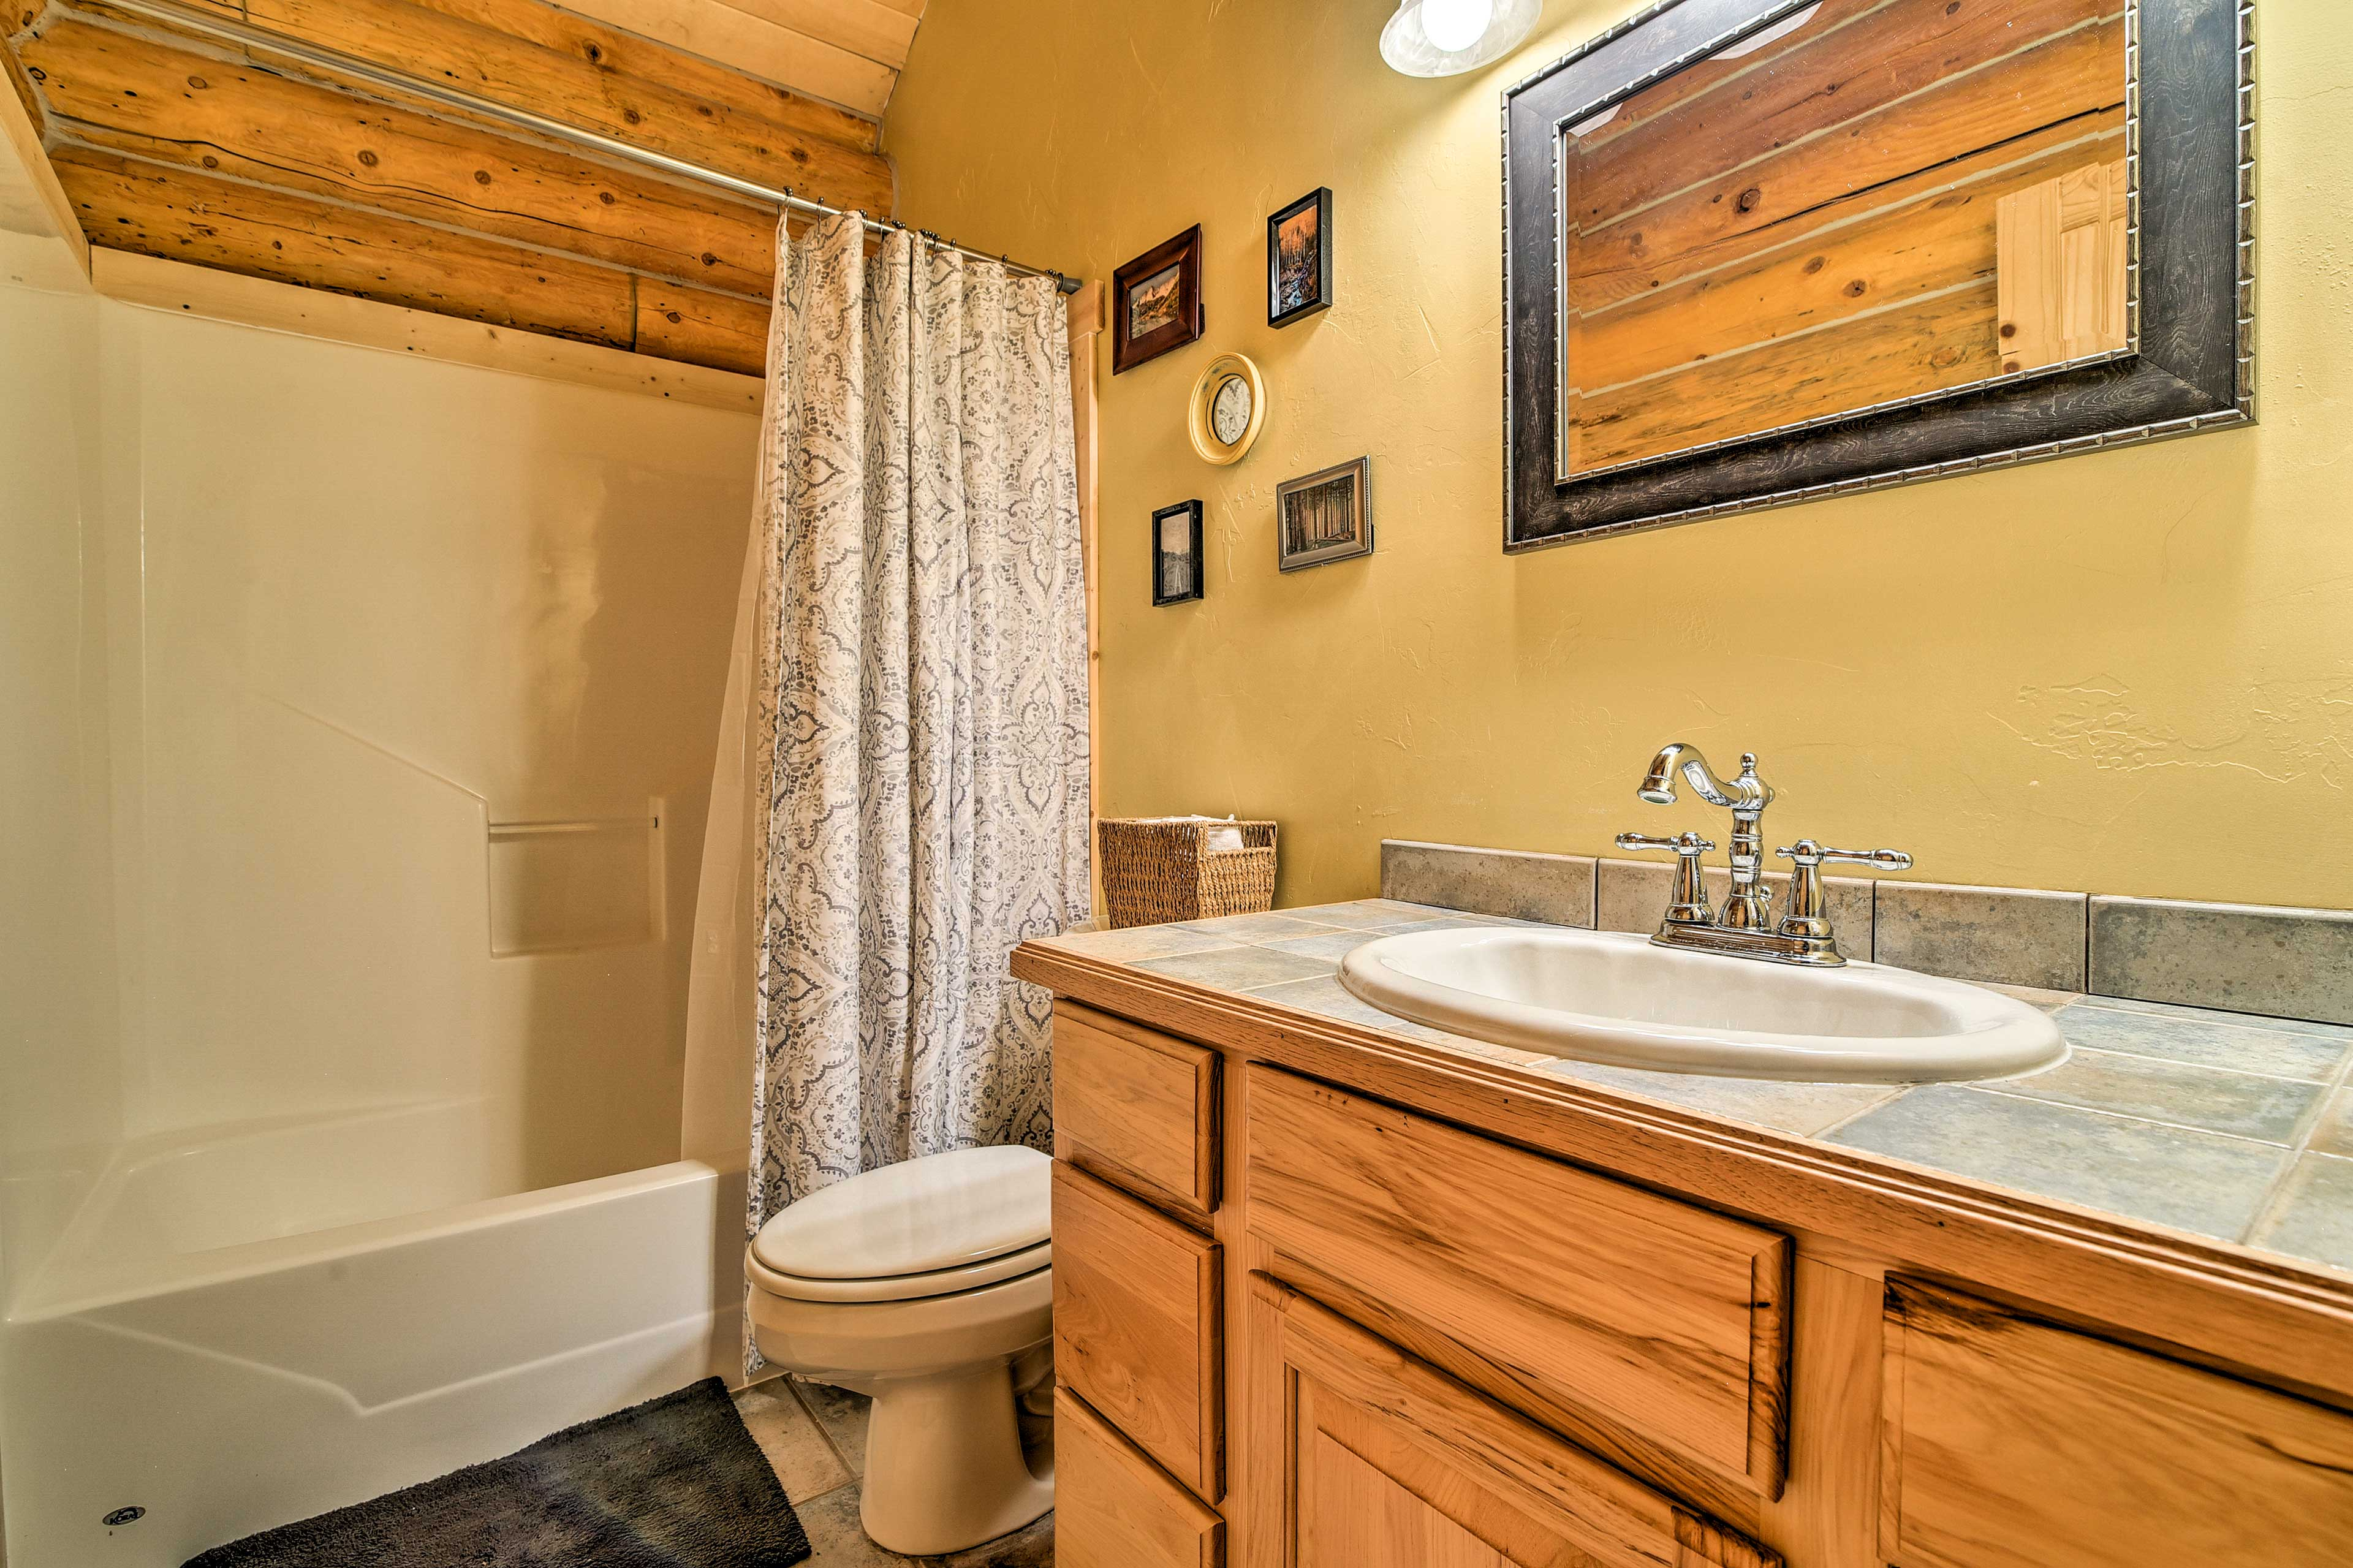 The next bathroom is a full with a shower/tub combo.